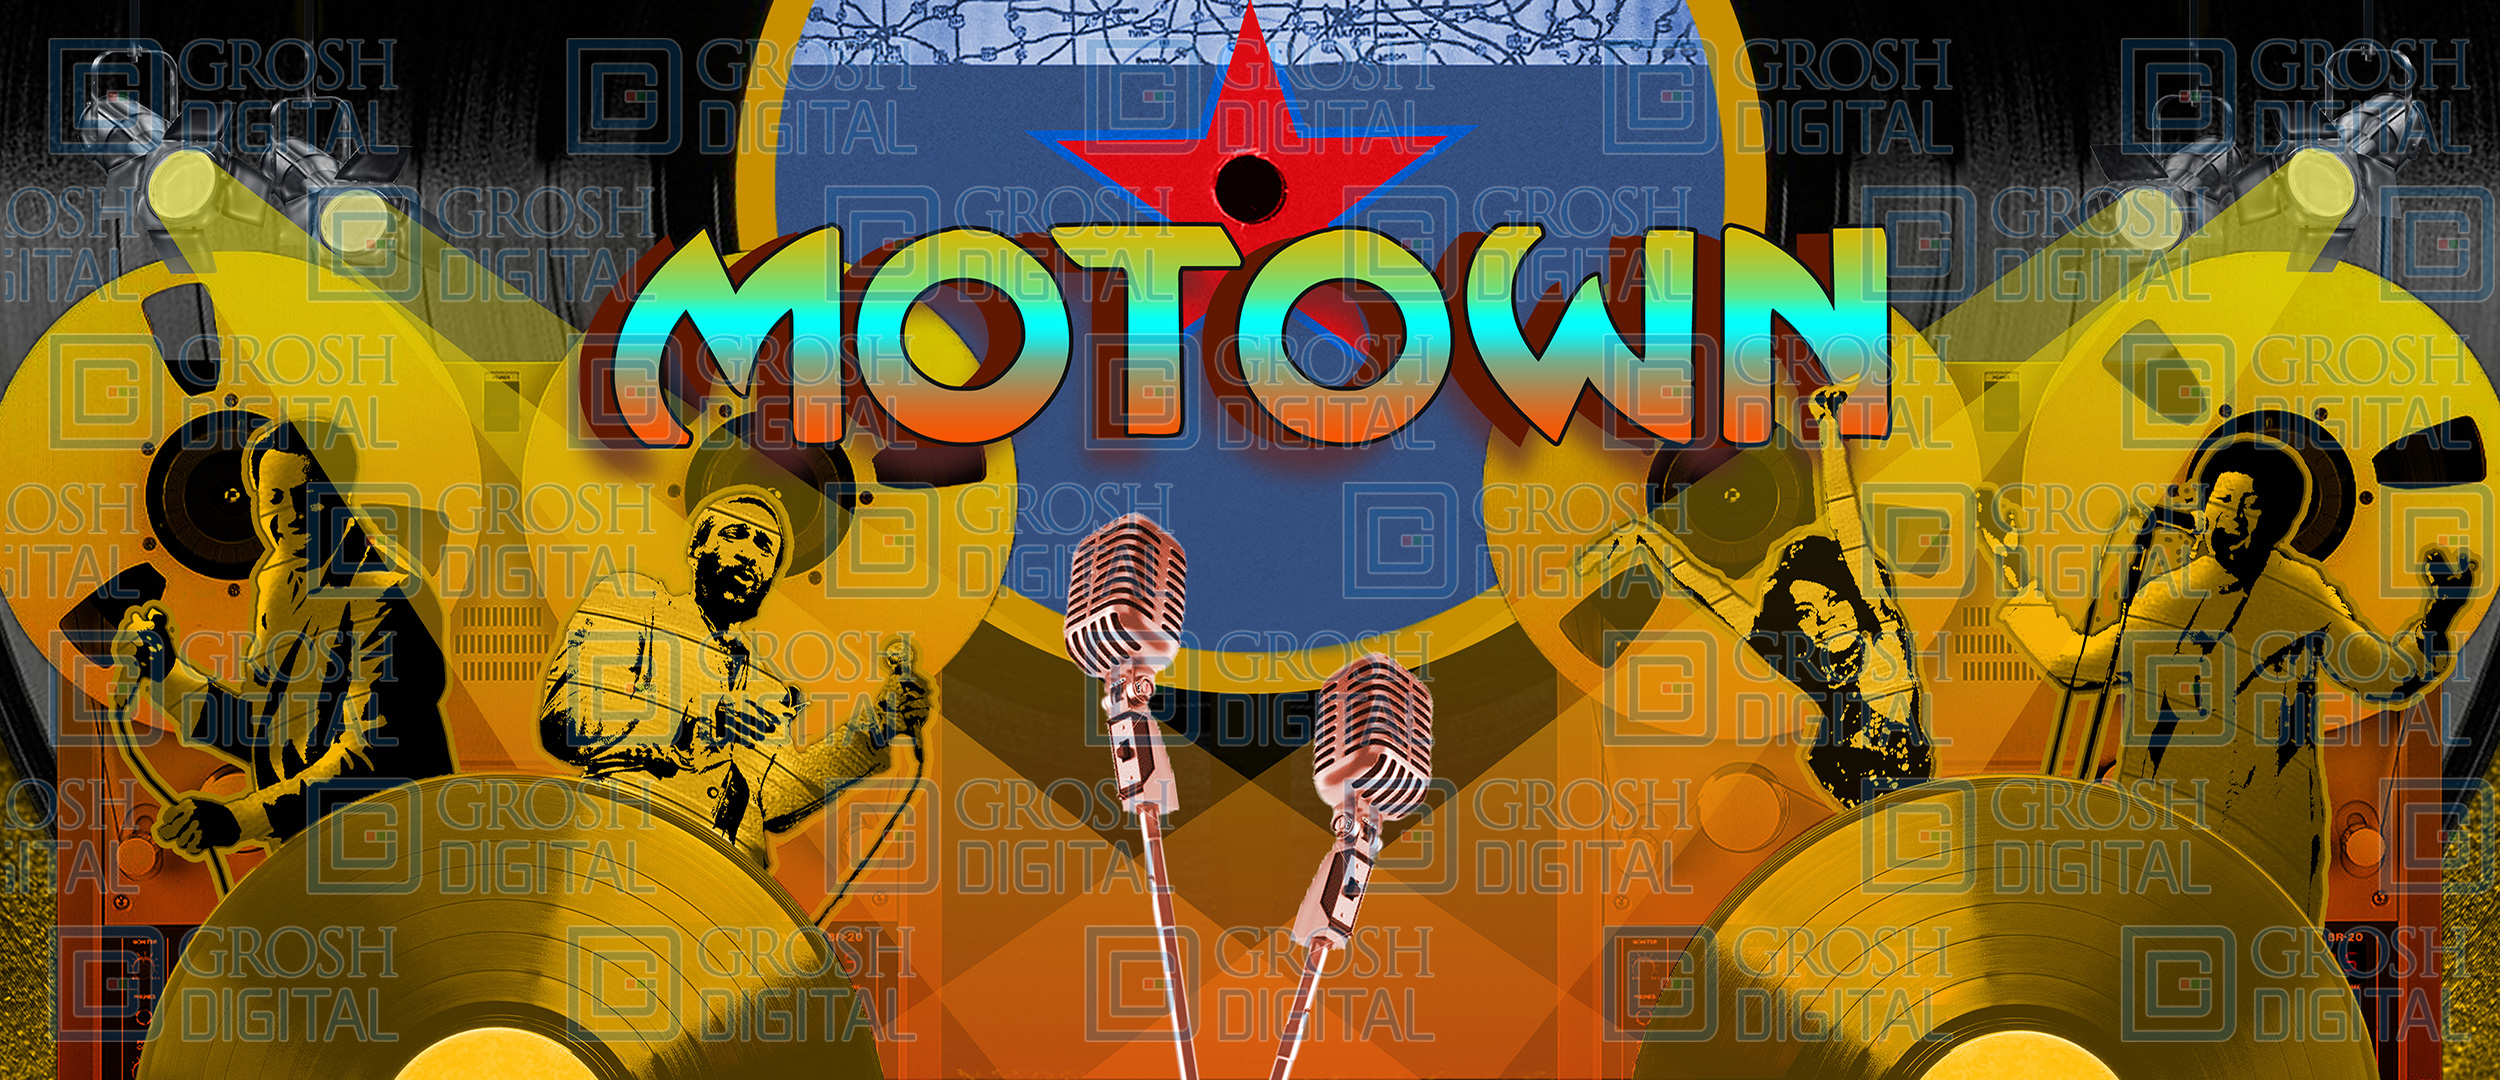 Motown Projected Backdrop for Abstract, Dance